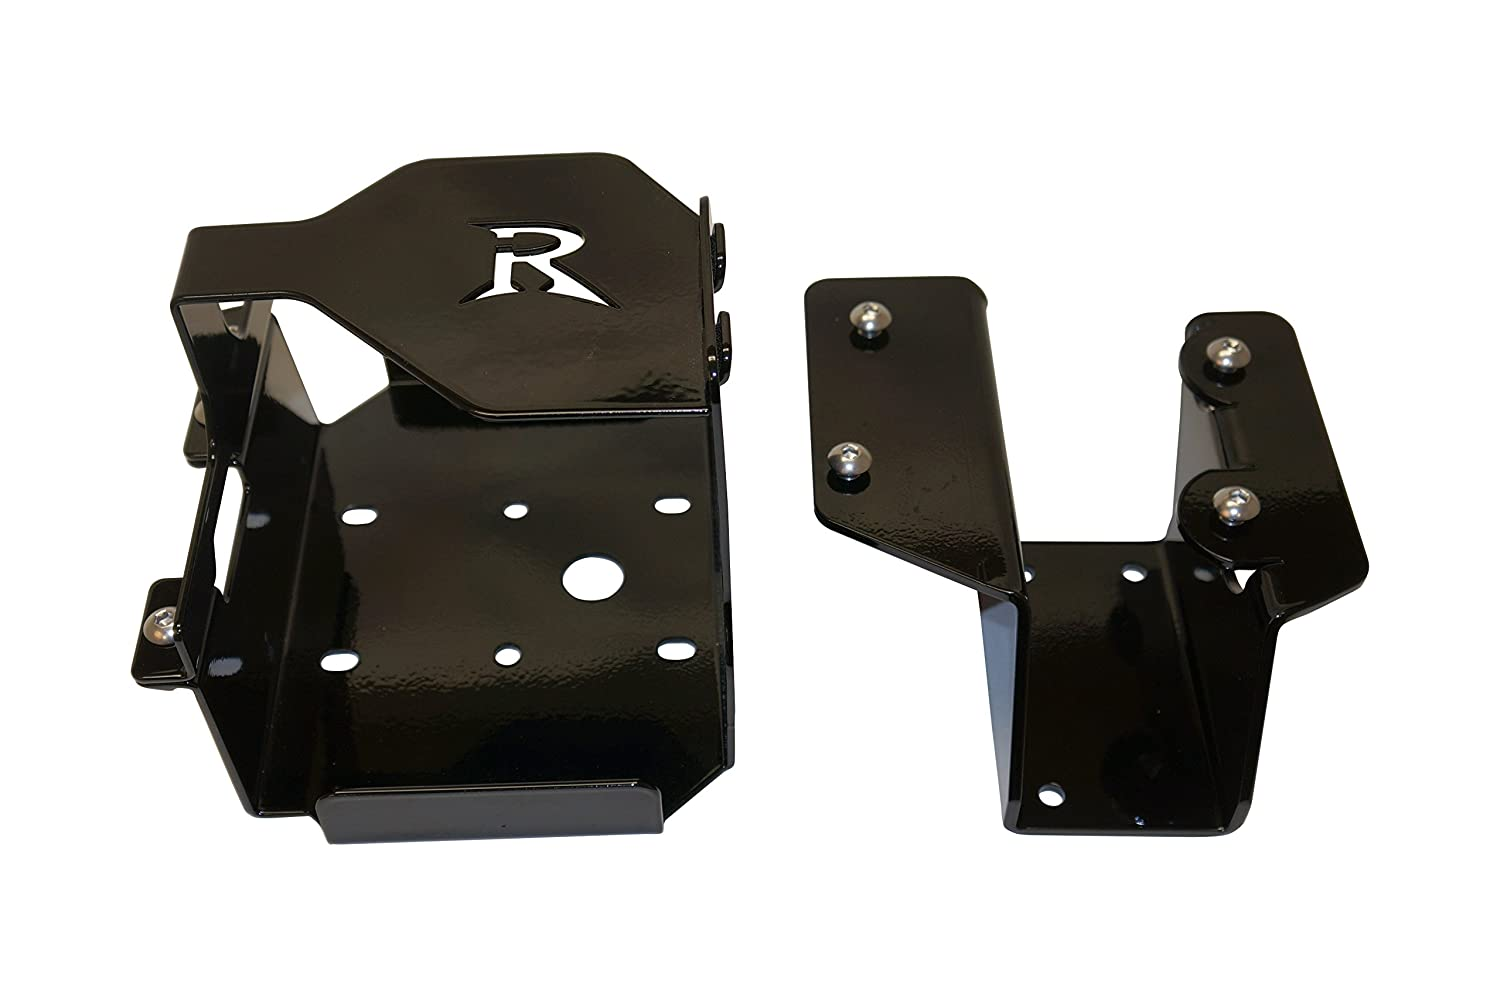 Rusty's Off-Road Replacement Battery Box for Jeep XJ Cherokee Rusty' s Off-Road